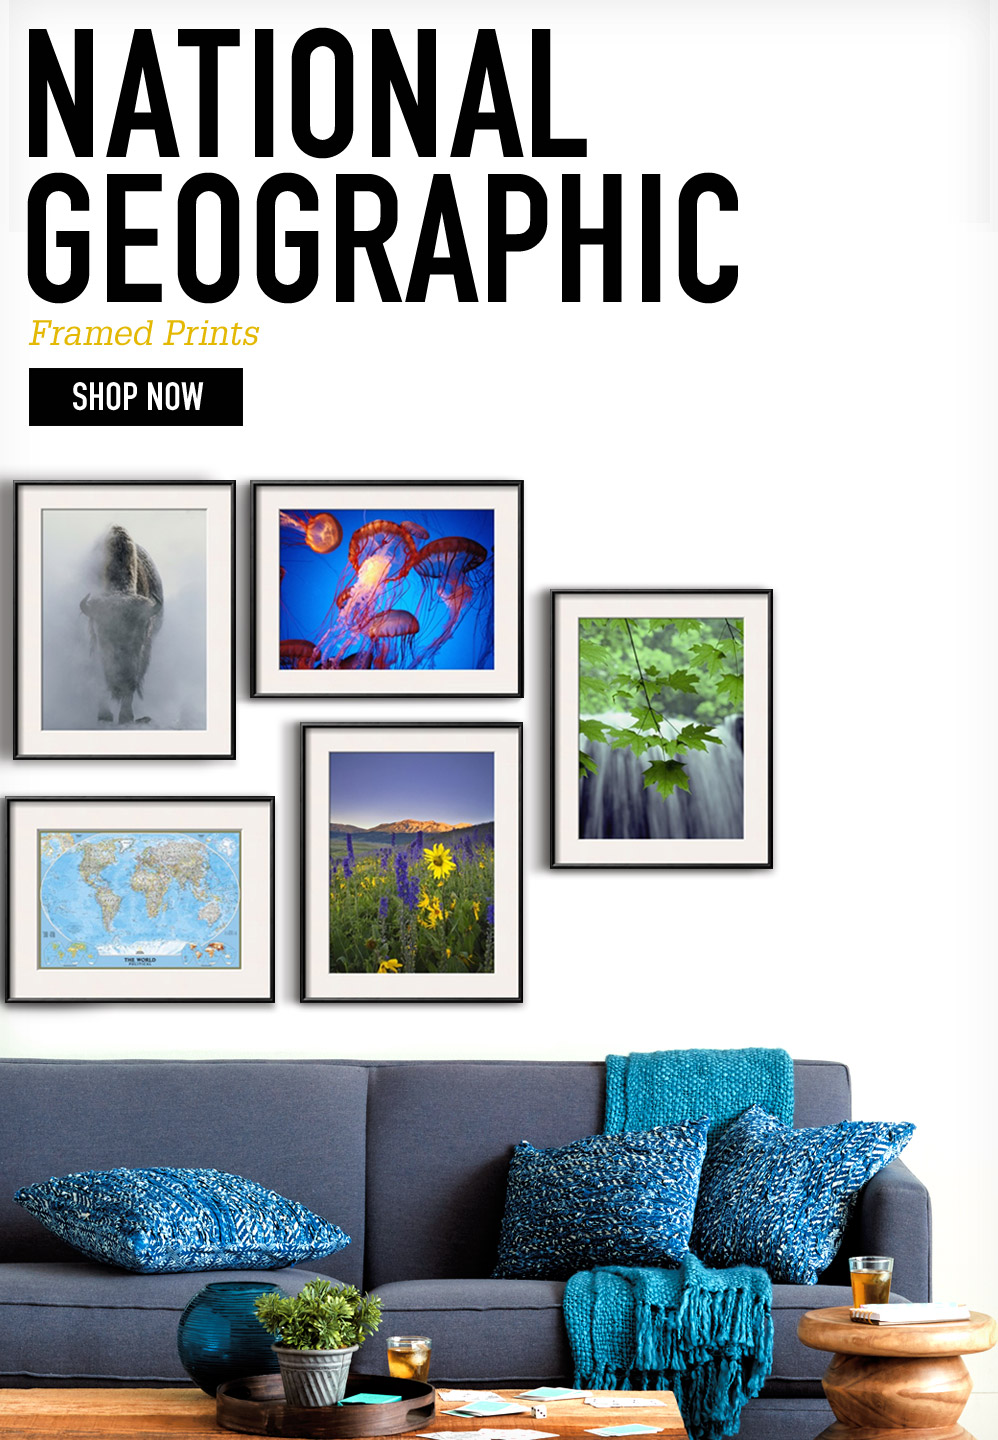 NATIONAL GEOGRAPHIC. Framed Prints. SHOP NOW